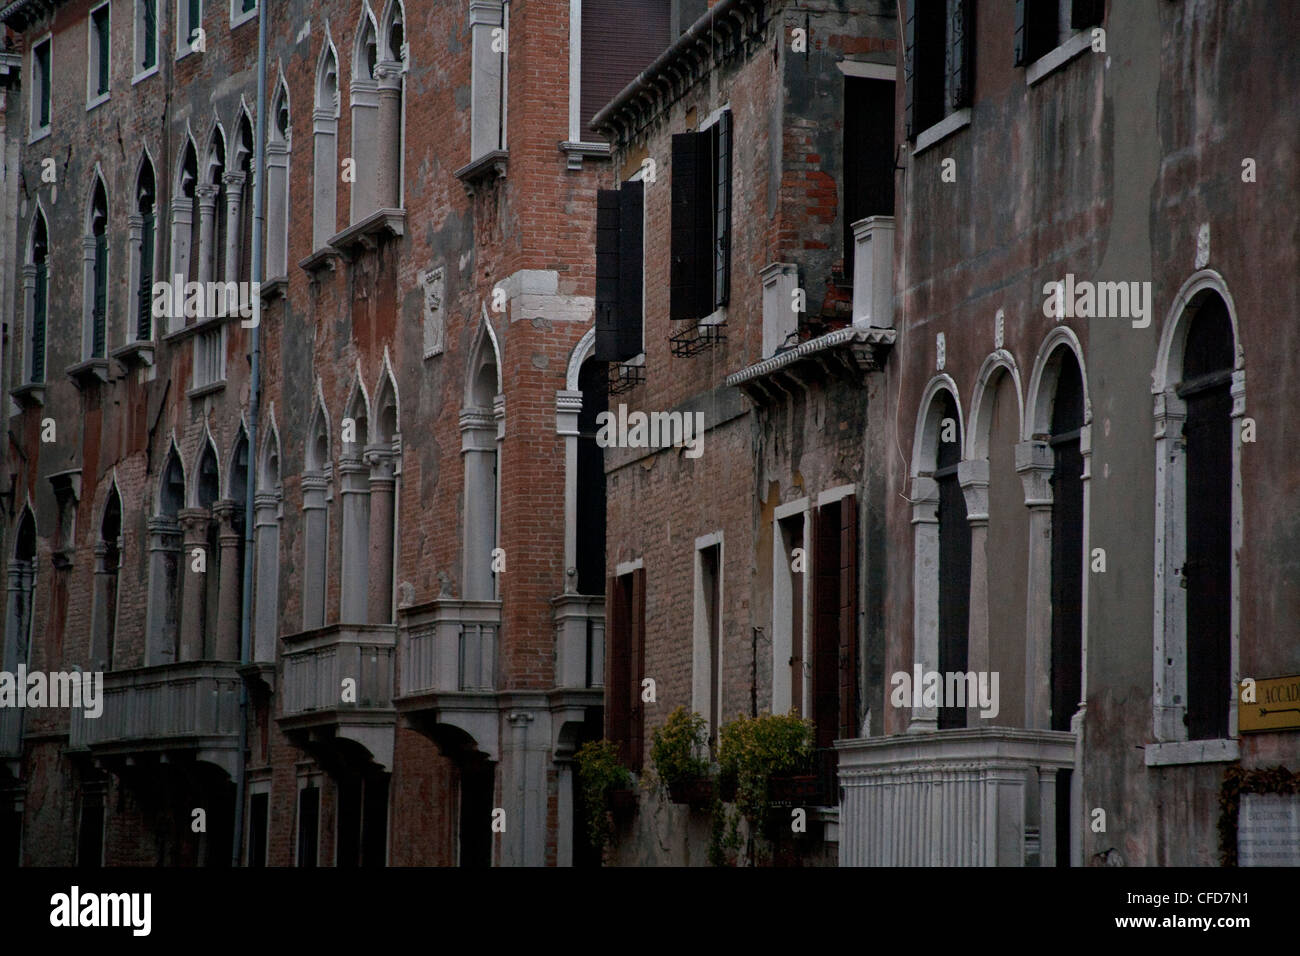 Row of Venetian buildings with arched and shuttered windows, Venice Italy - Stock Image